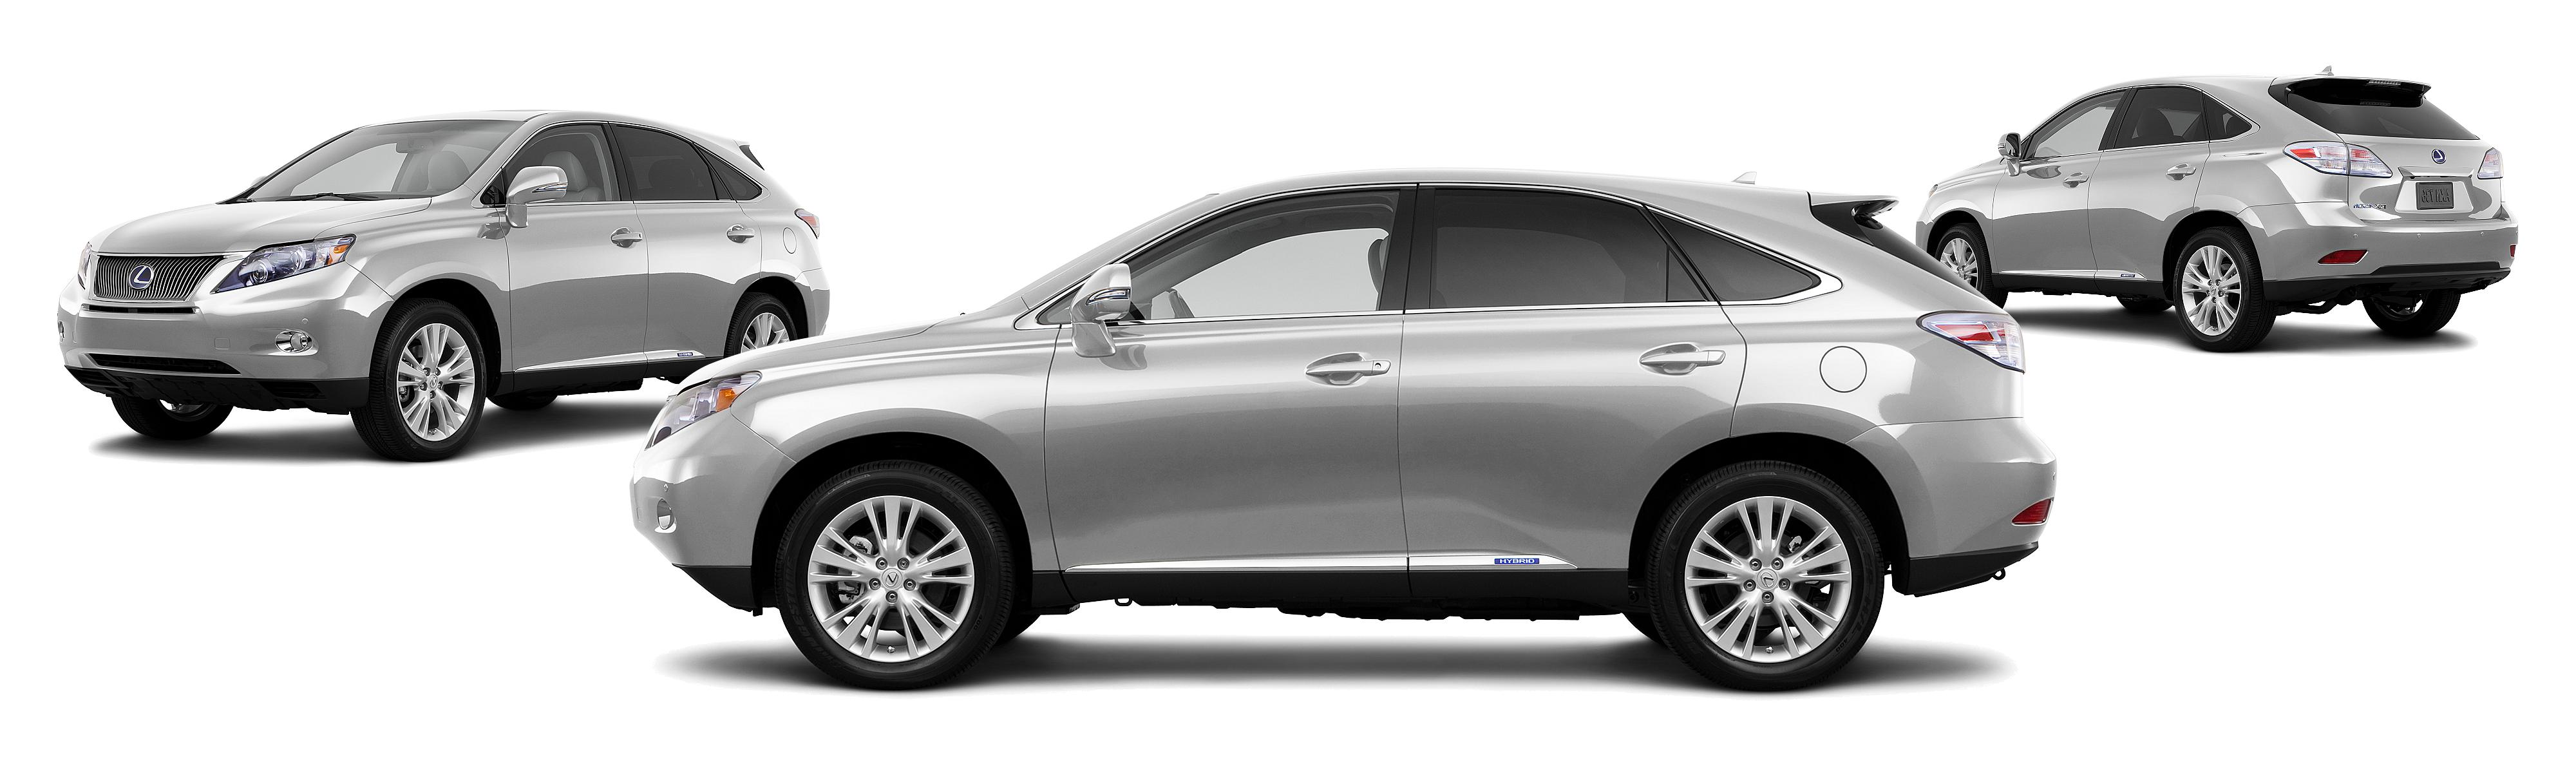 photos information momentcar lexus rx and